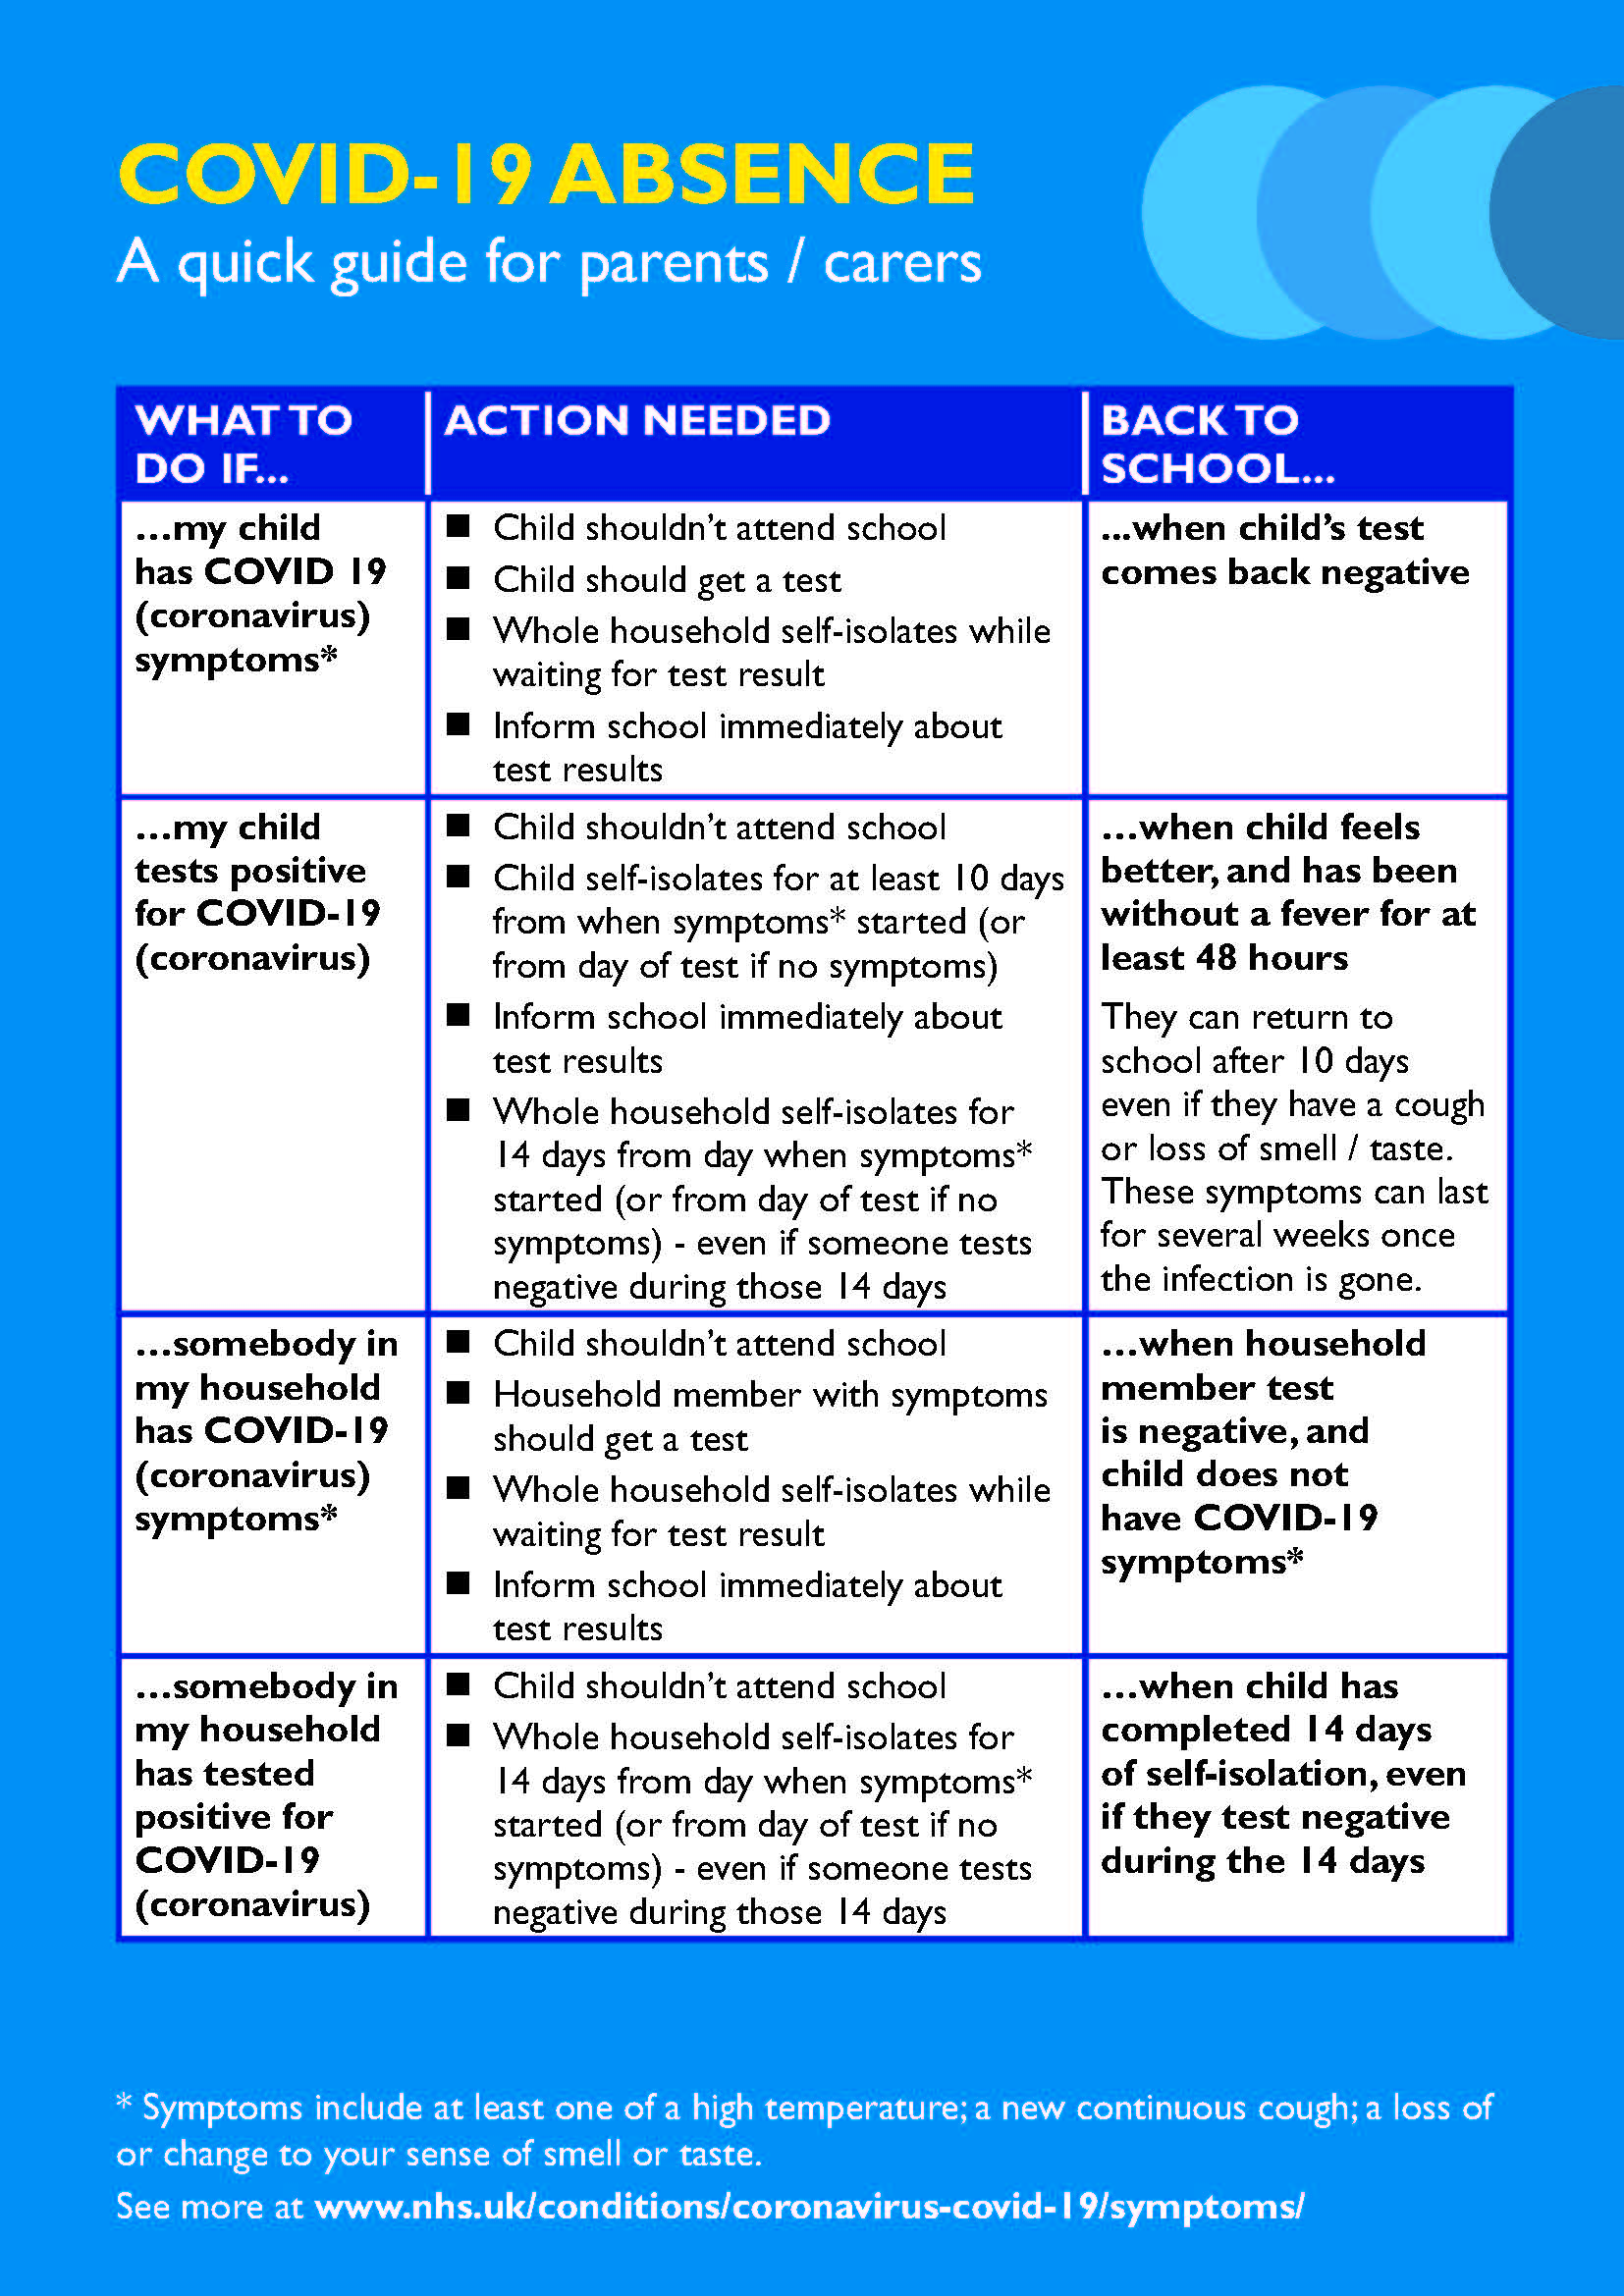 picture showing a checklist about absences from school